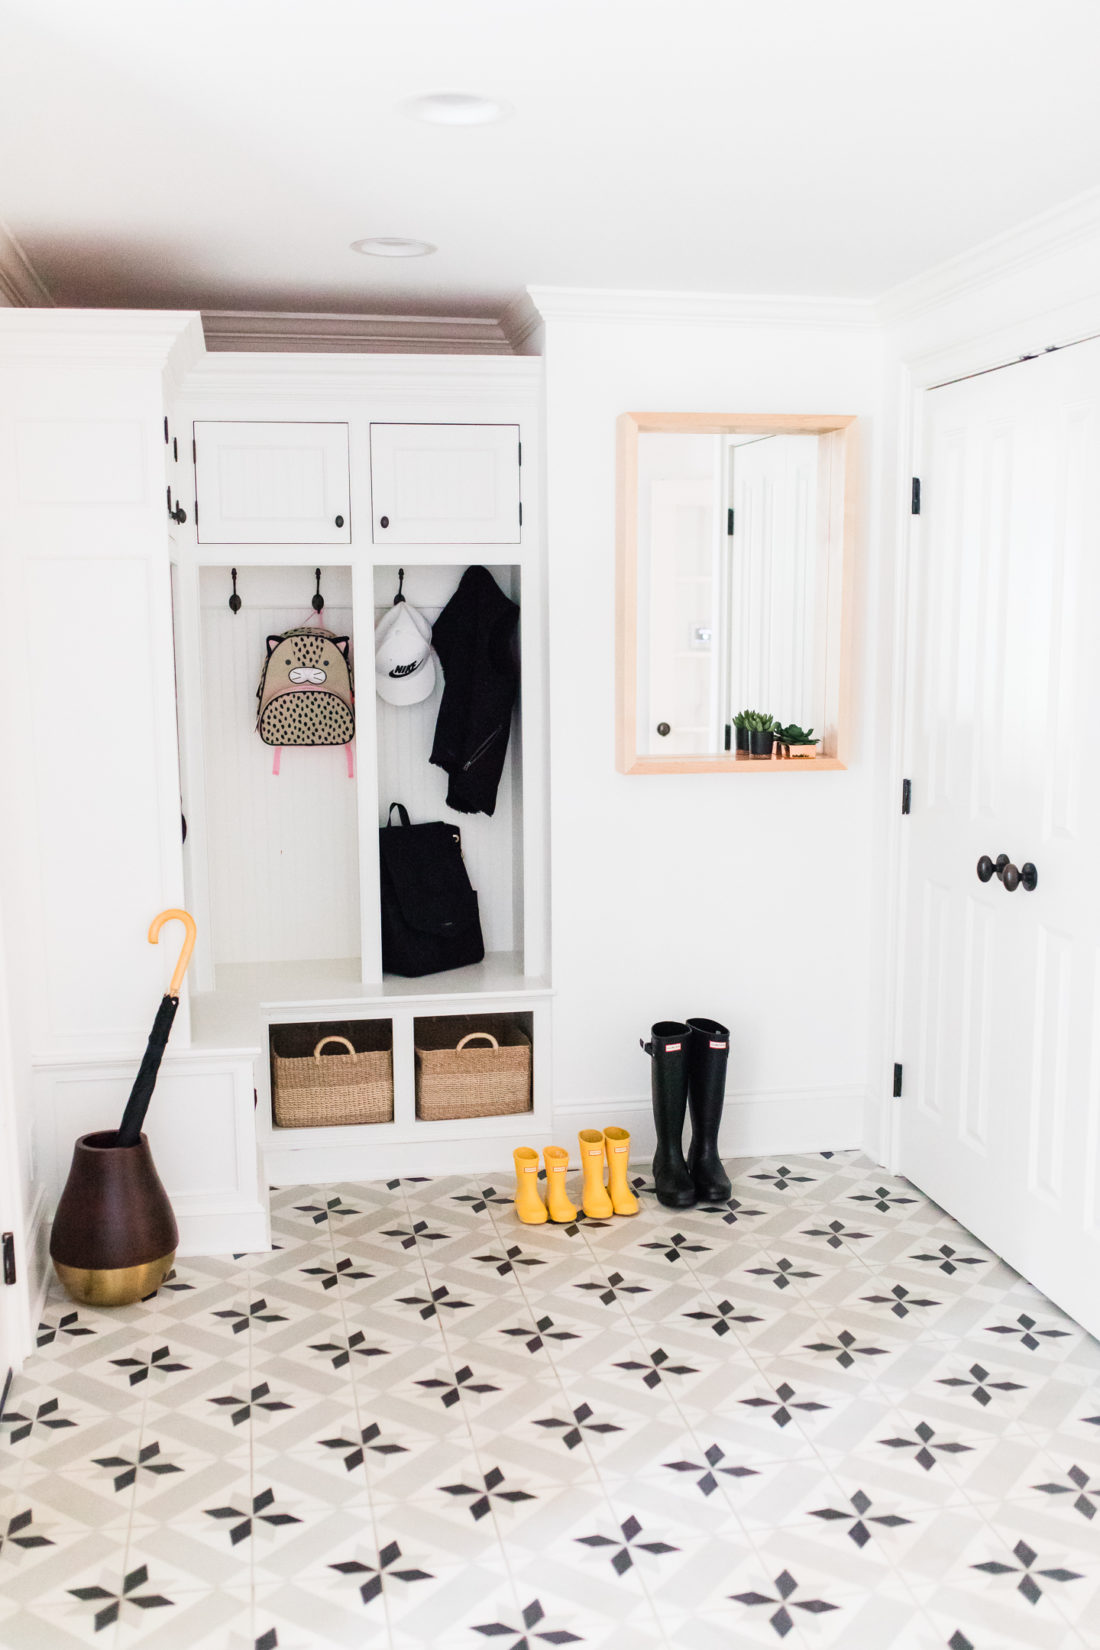 The Black and white mud room in Eva Amurri Martino's Connecticut home featuring black and white patterned cement tile